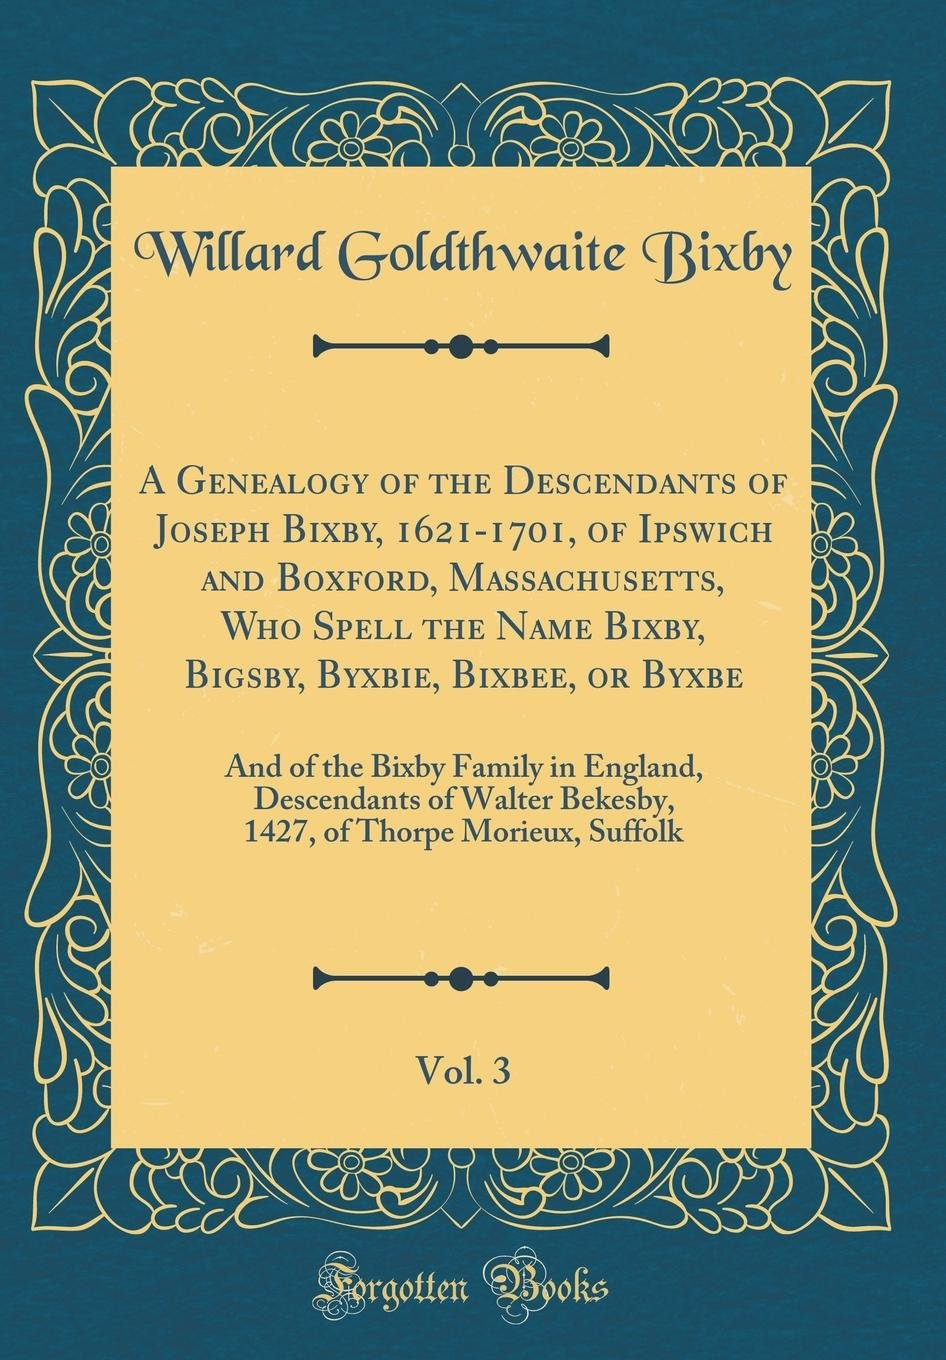 A Genealogy of the Descendants of Joseph Bixby, 1621-1701, of Ipswich and Boxford, Massachusetts, Who Spell the Name Bixby, Bigsby, Byxbie, Bixbee, or ... of Walter Bekesby, 1427, of Thorpe Morieu ebook